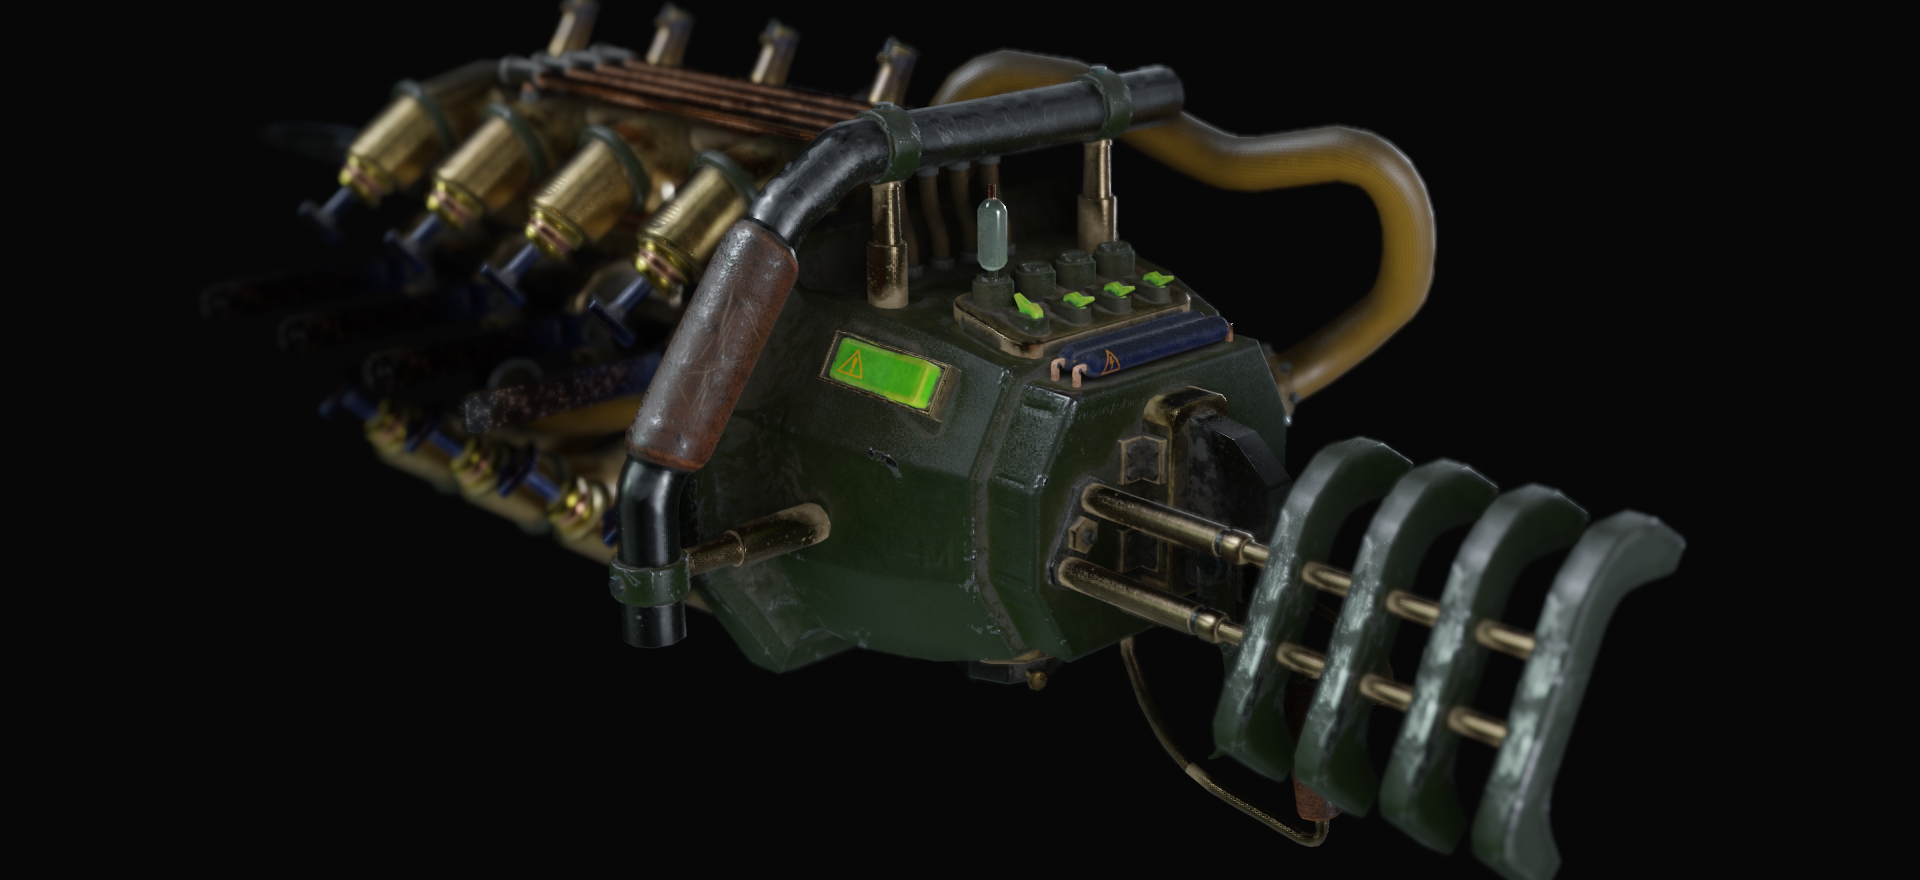 The tool we managed to include in this version was a laser. It is a powerful damage-dealing module capableof dispatching dybbuks quicker and from a farther distance than the blast and stab method, but consumes energy.